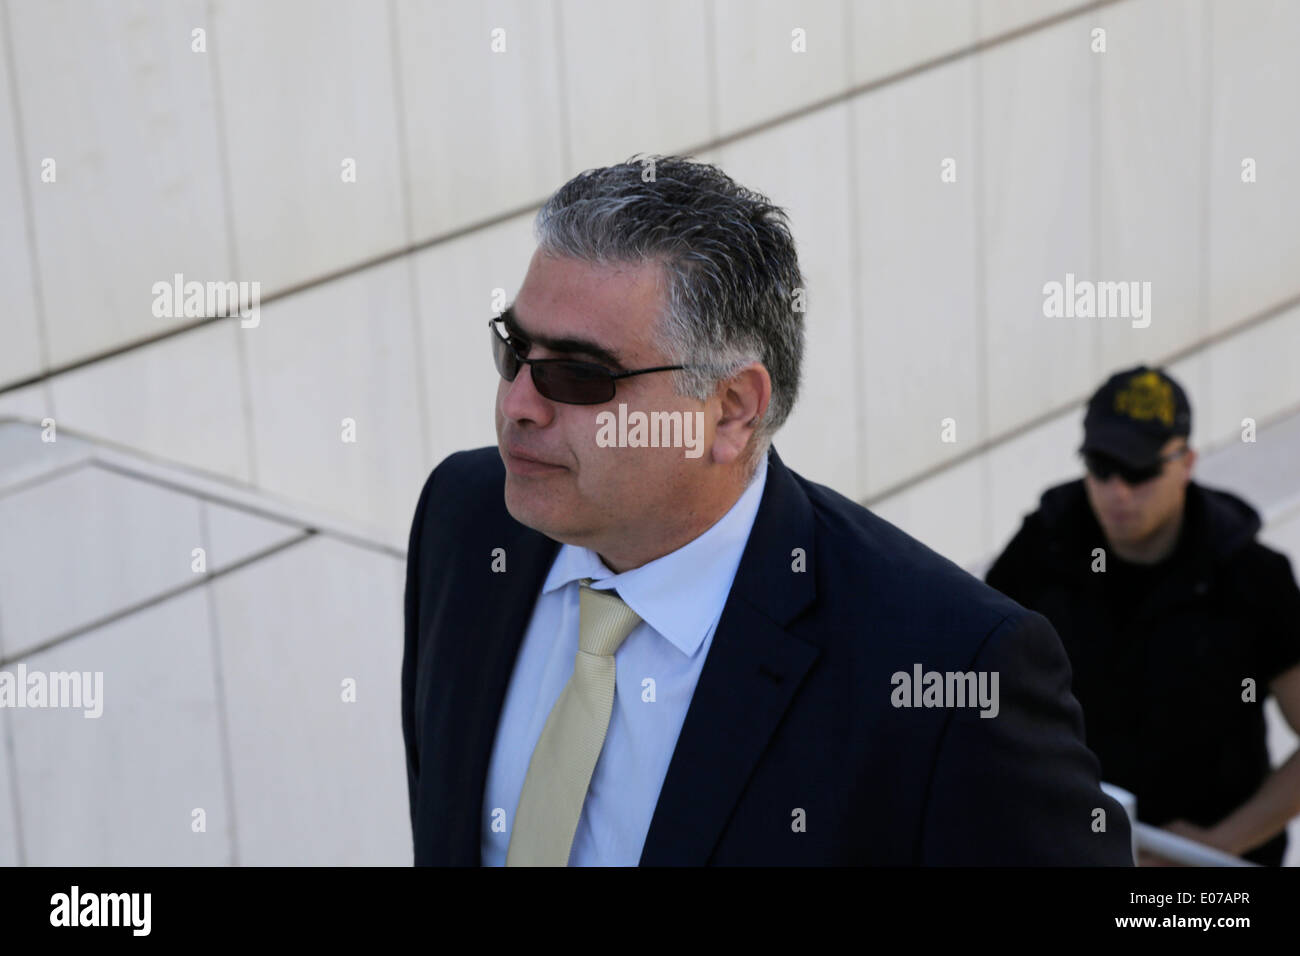 Athens, Greece. 5th May 2014. Golden Dawn's MP Nikos Kouzilos arrives at the Athens Supreme Cour. Golden Dawn MPs were invited by the Special Appellate magistrate, to account for the category of membership and directing a criminal organization. Athens, Greece on May 5, 2014. Credit:  Konstantinos Tsakalidis/Alamy Live News - Stock Image